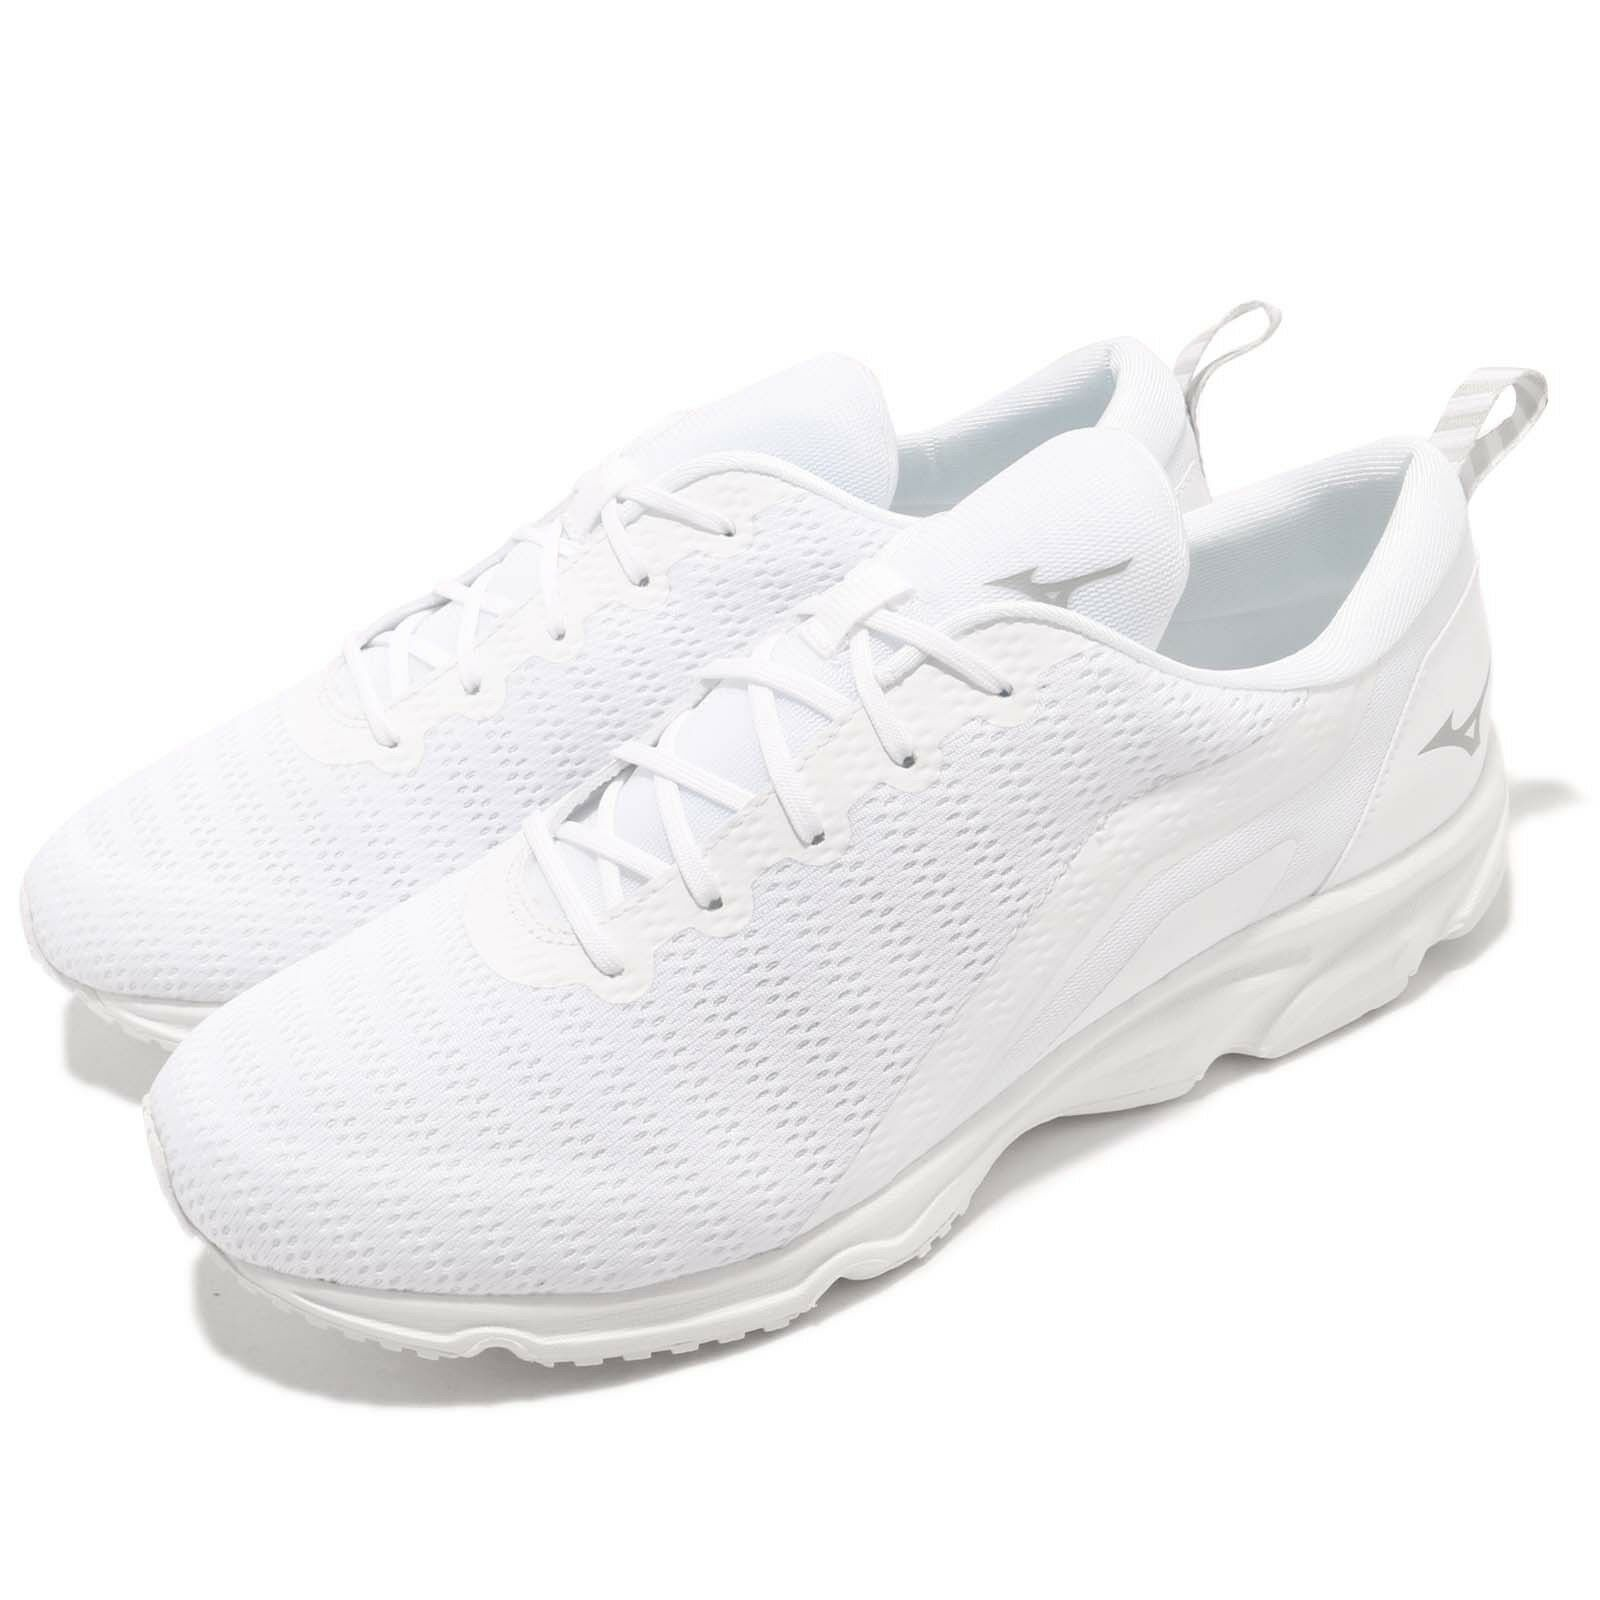 Mizuno EzRun To White Men Running Training shoes Sneakers J1GC1855-01